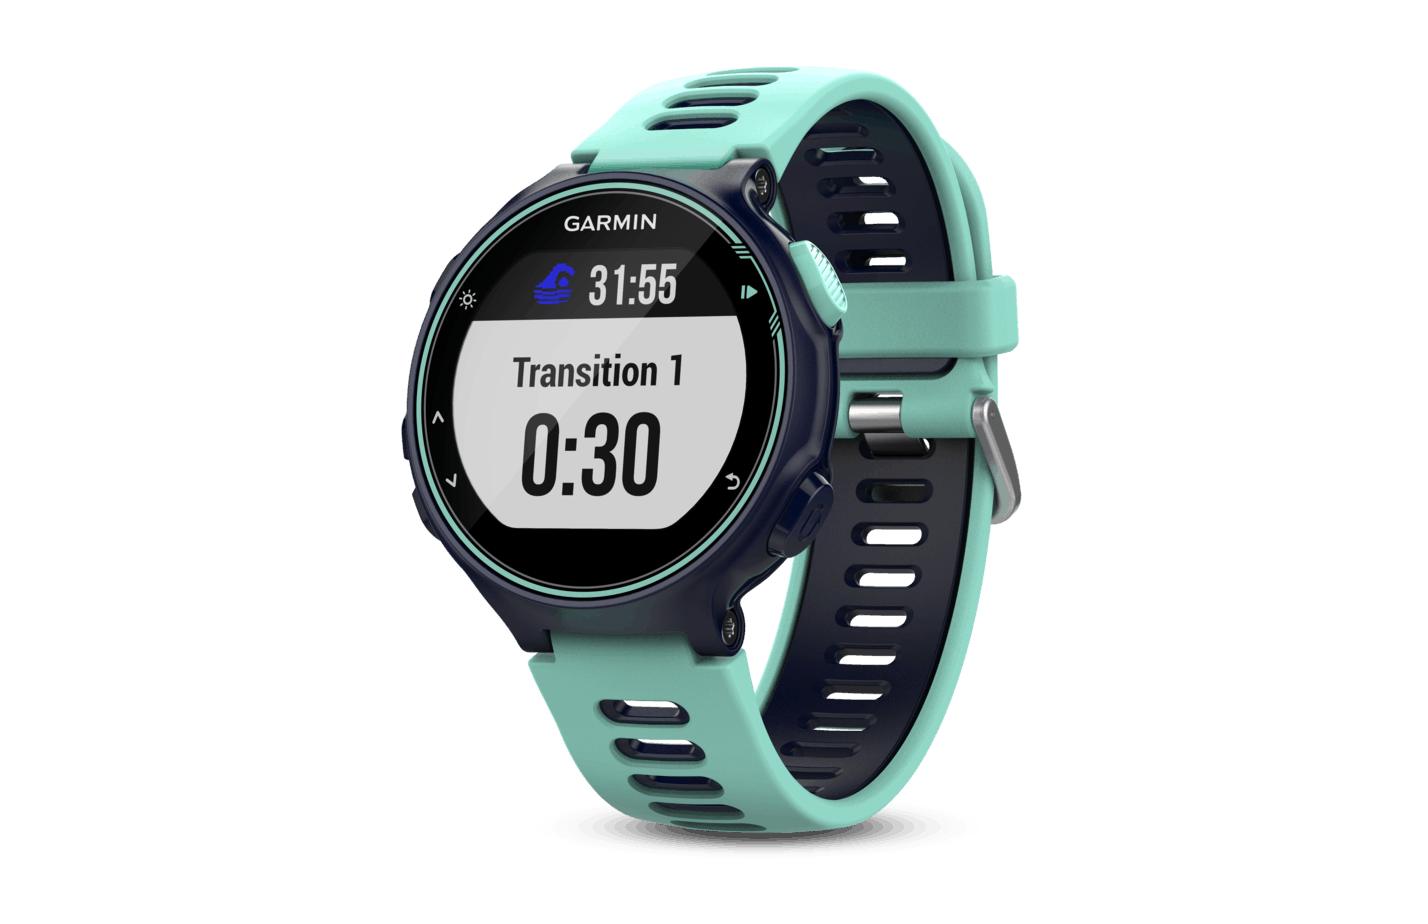 Garmin Forerunner 735xt Review The Wired Runner